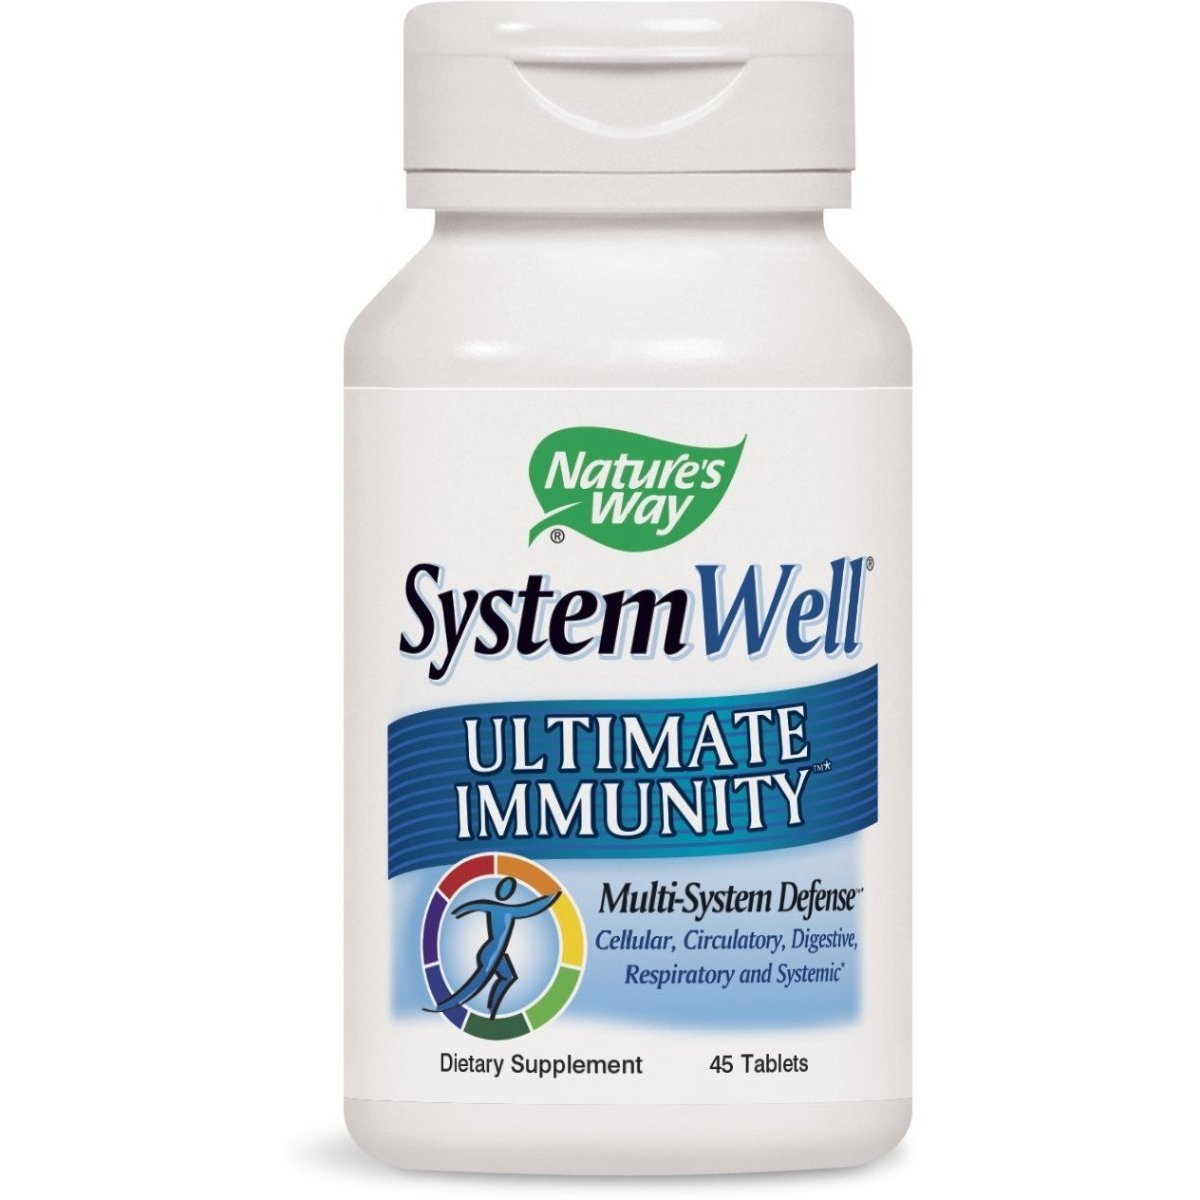 Nature's Way SystemWell Ultimate Immunity, Multi-System Defense Tablets